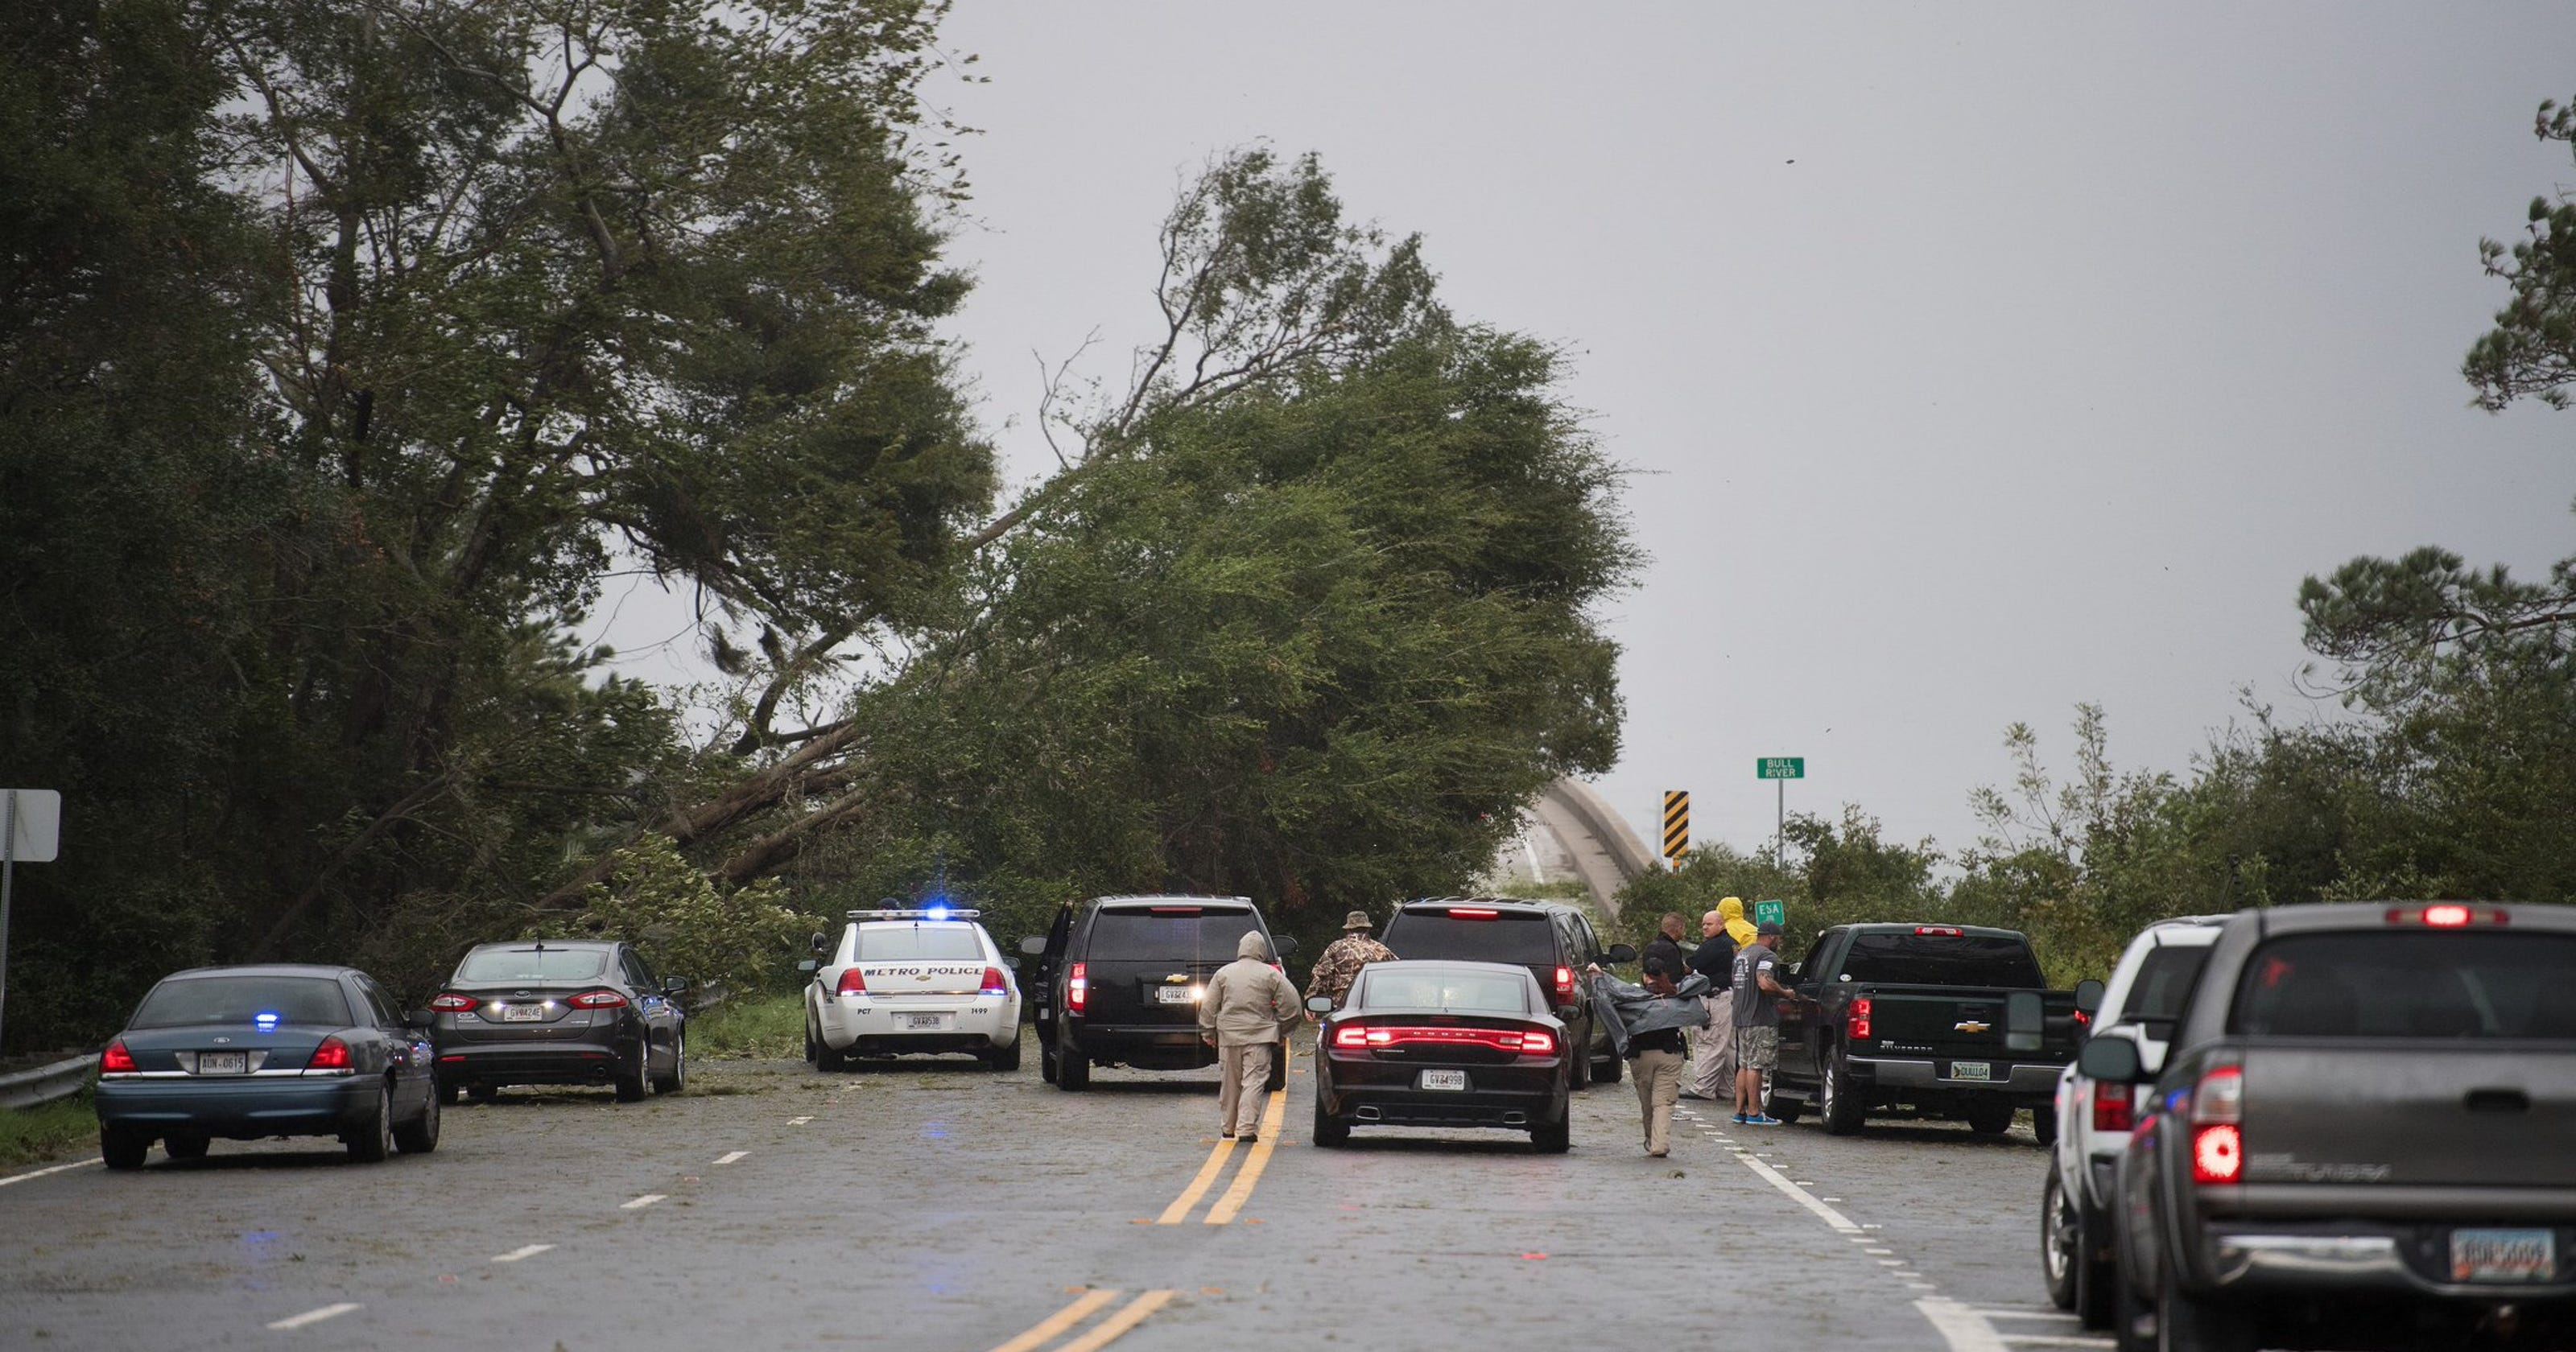 Damage in Savannah not as high as feared, but tragedy still